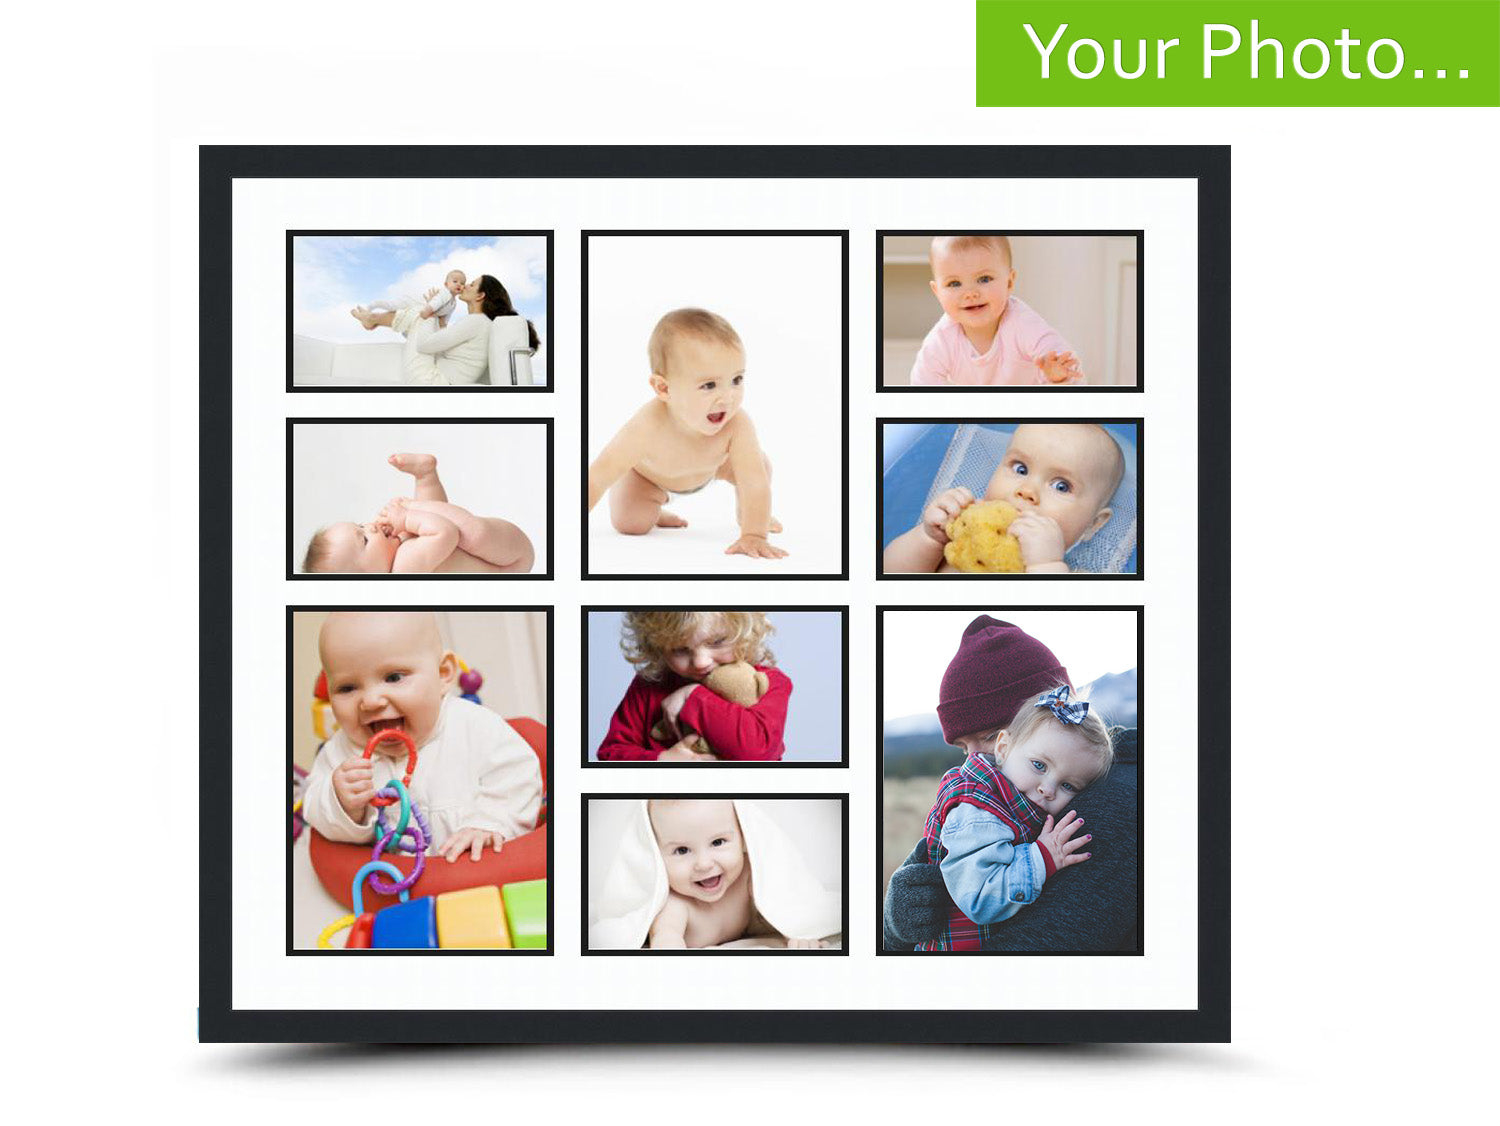 Your Photos in a Custom Collage Frame - Find Unique Christmas Gifts